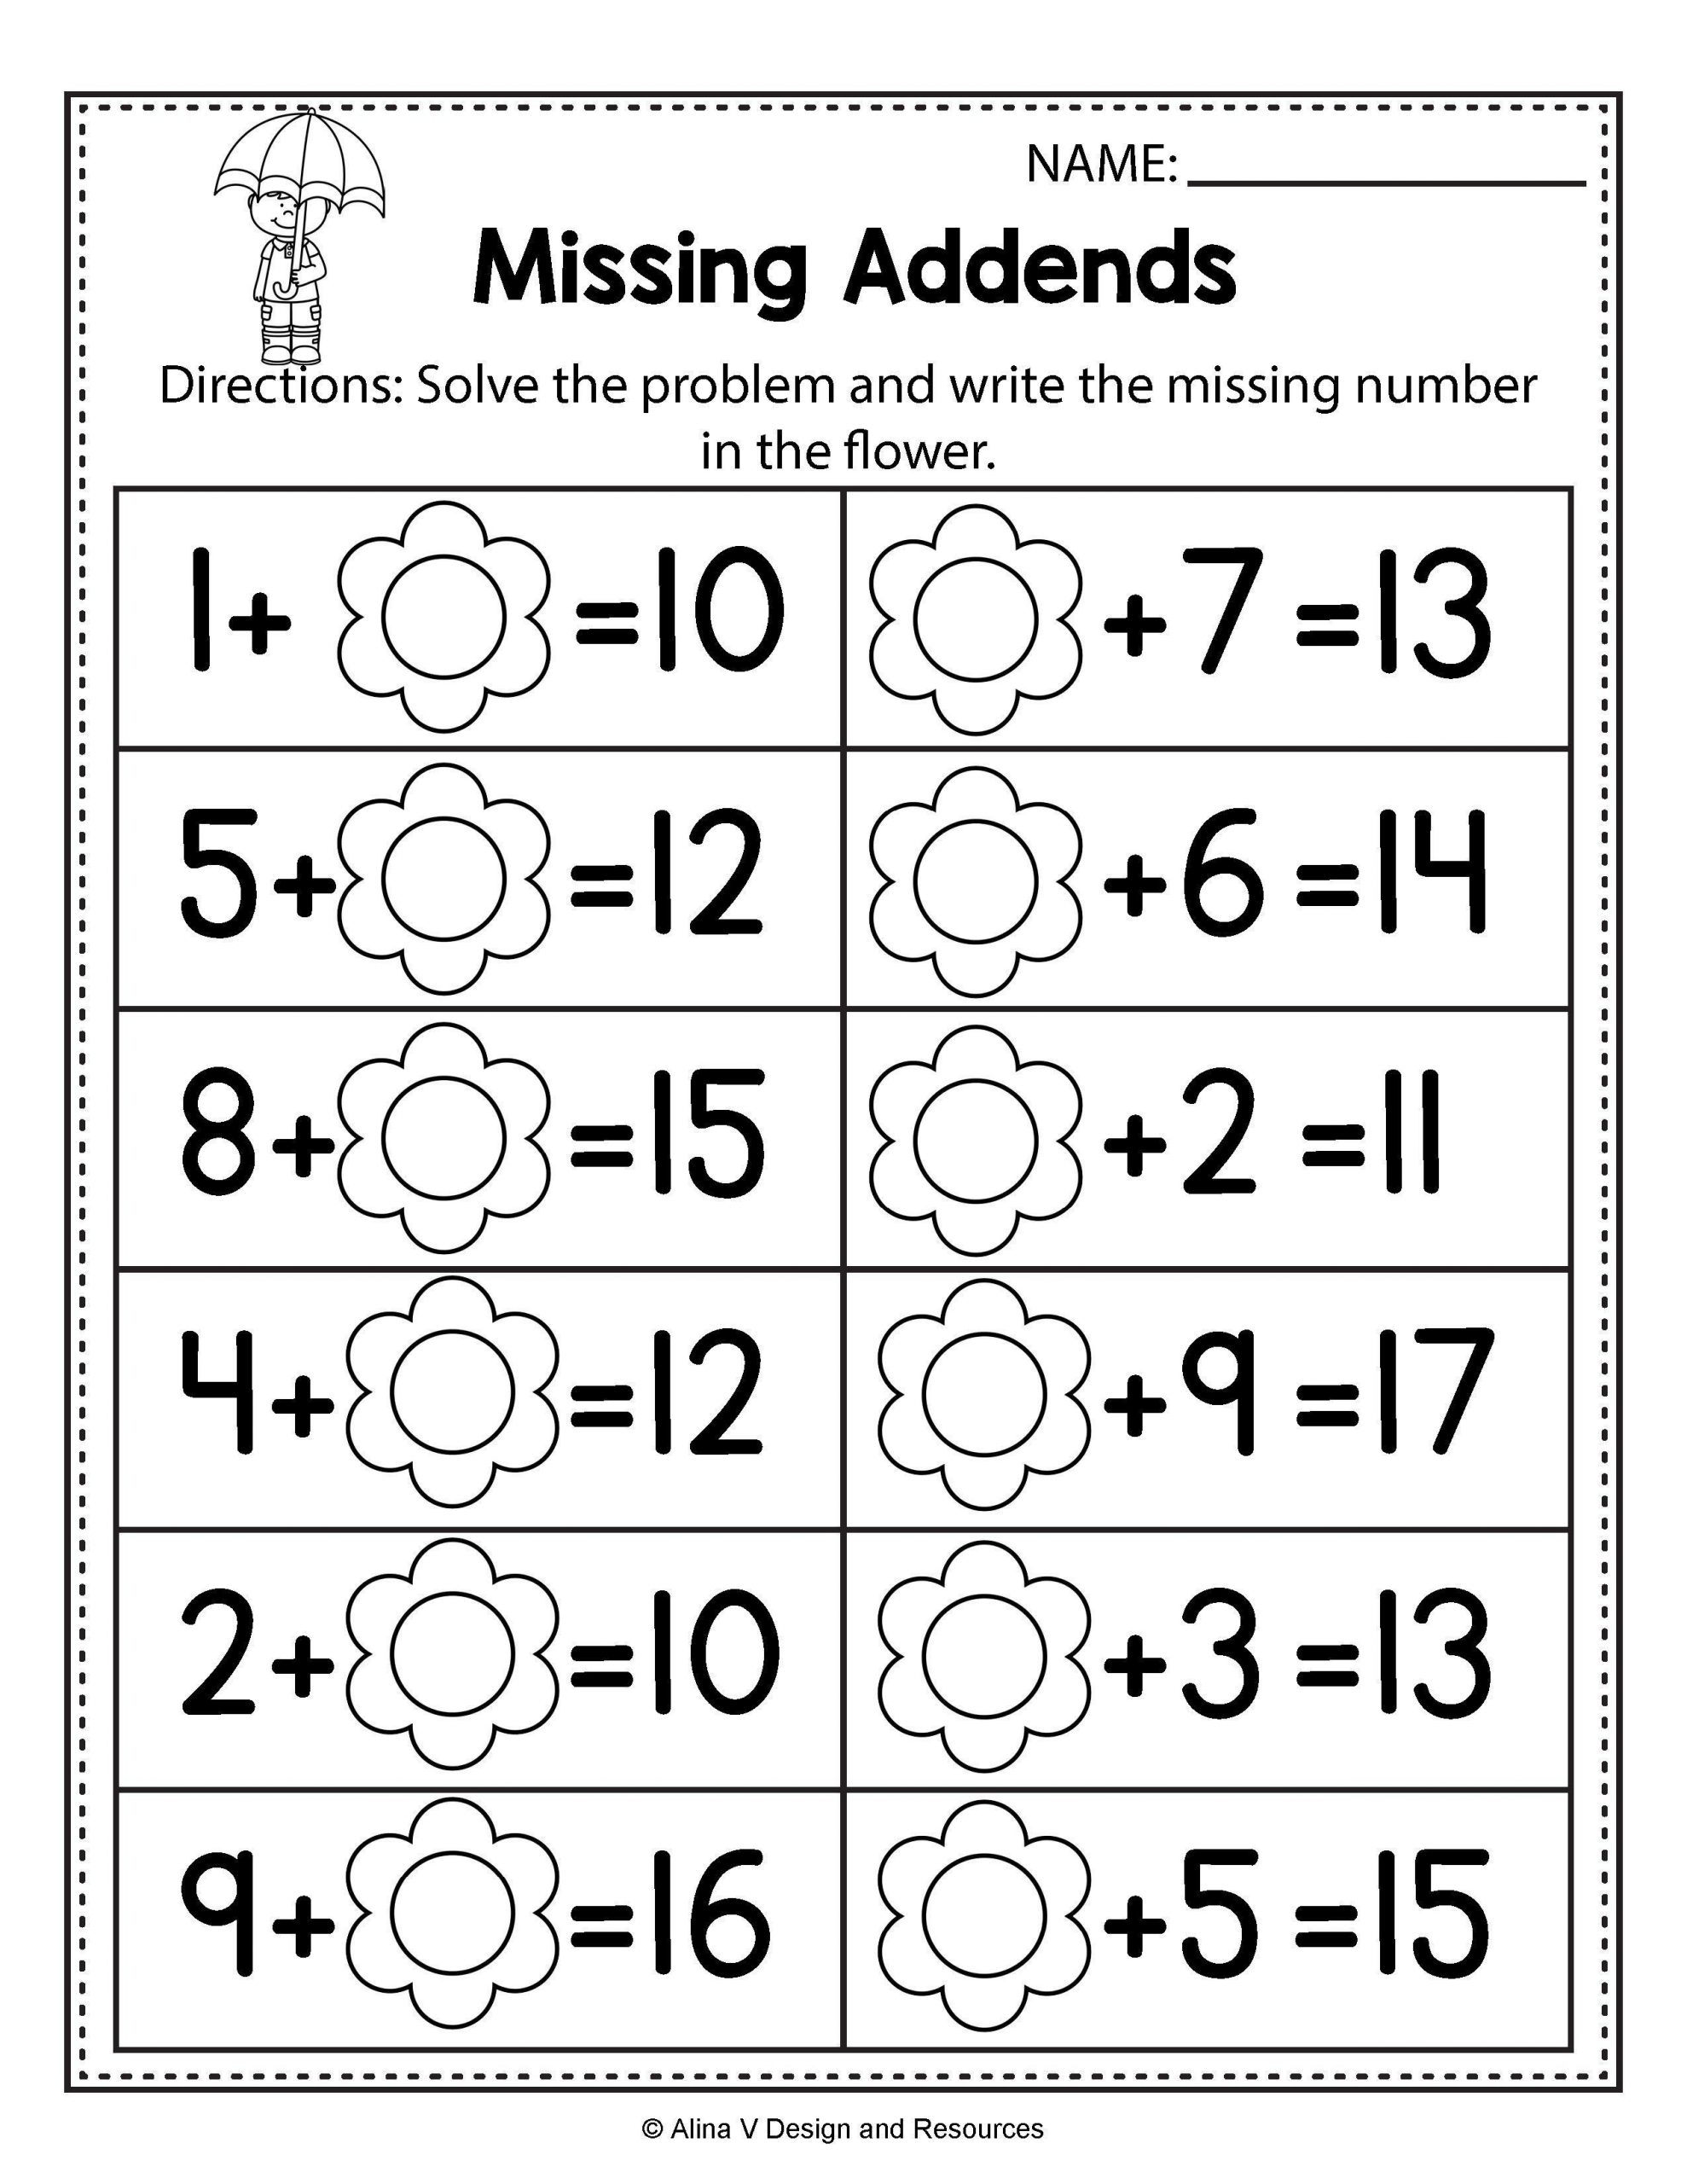 Missing Addend Worksheets 1st Grade Free Missing Addend Worksheets 1st Grade Free